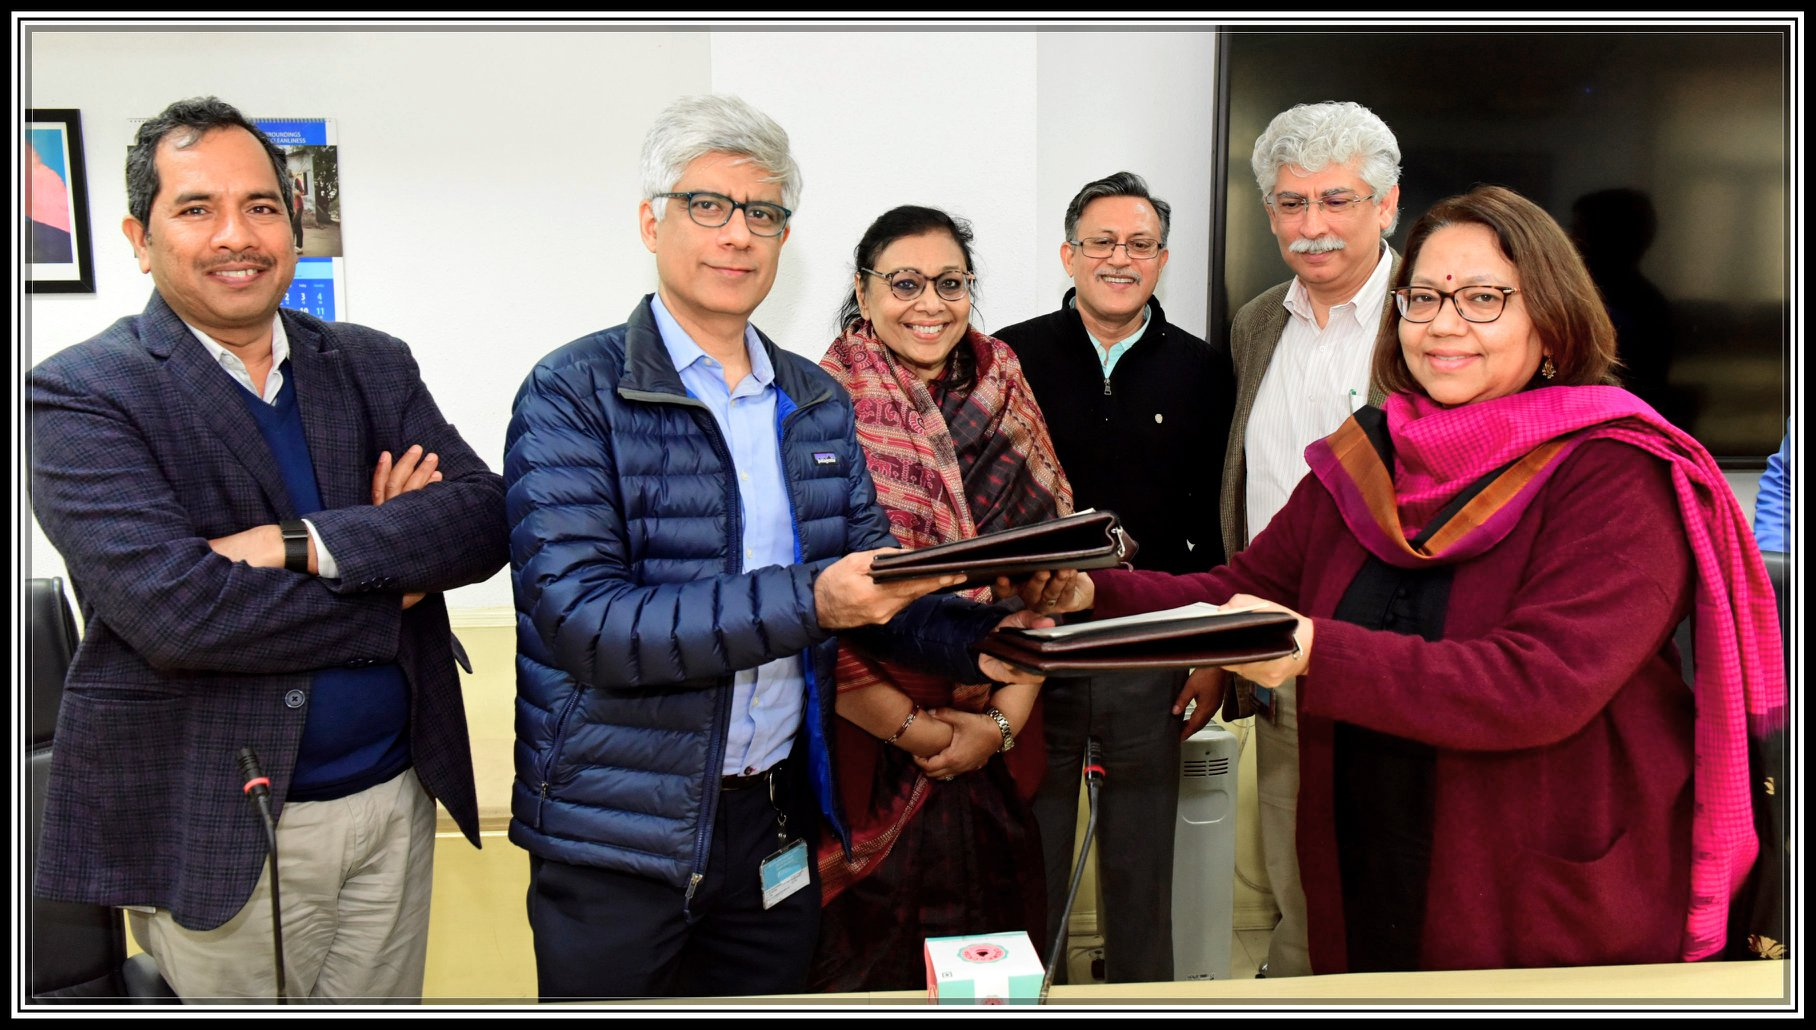 MoU signed between Ministry of Rural Development and Bill & Melinda Gates Foundation on 22nd January, 2020 by Smt. Alka Upadhyaya, Additional Secretary, MoRD and Shri Alkesh Wadwani, Director (Poverty Alleviation), BMGF in presence of Shri Rajesh Bhushan, Secretary Rural Development.